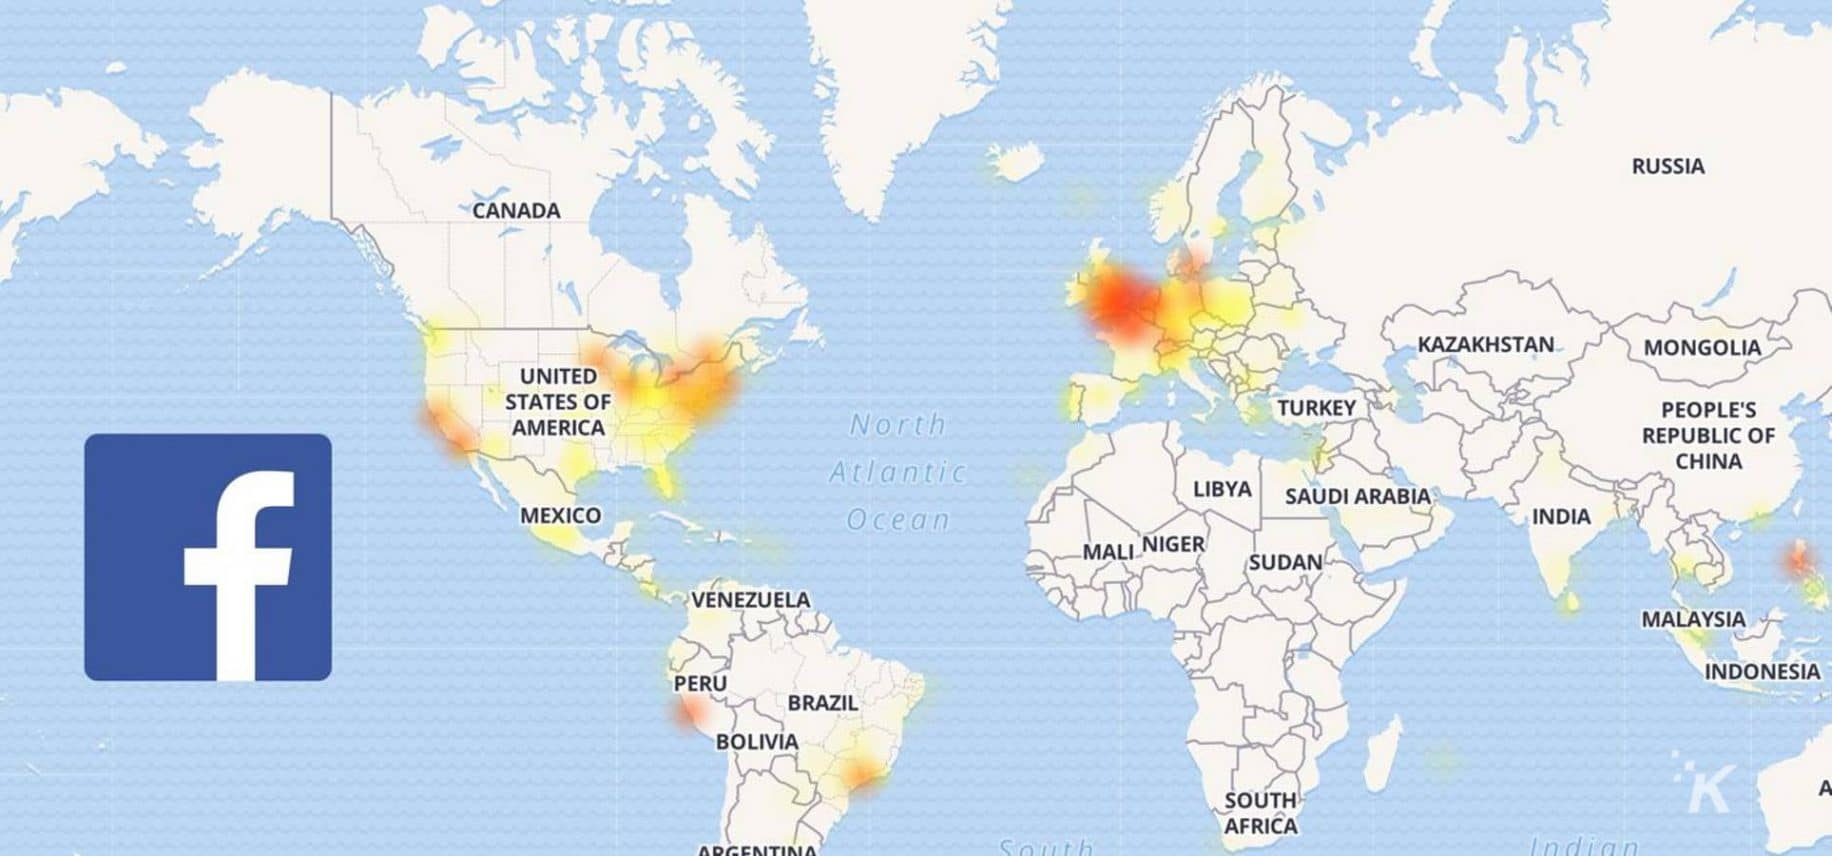 Facebook, Instagram, and WhatsApp are experiencing outages